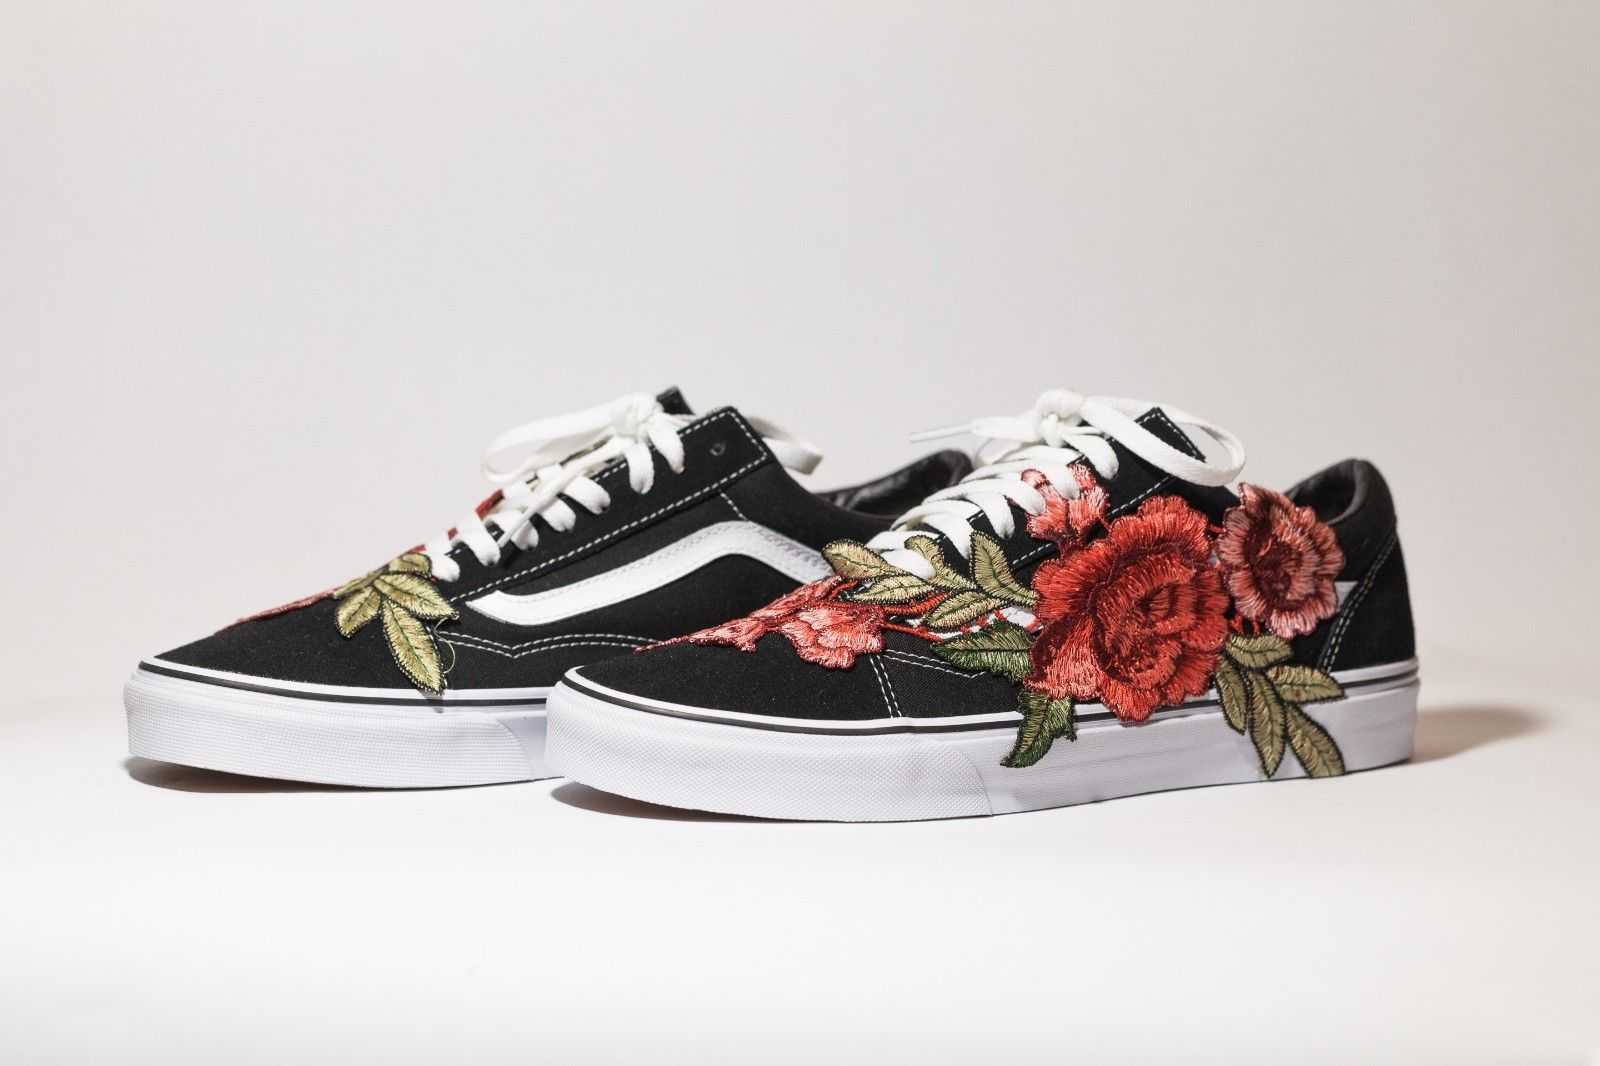 VANS SK8-LOW Original Custom 'Rose Bush' Premium Edition available in all sizes